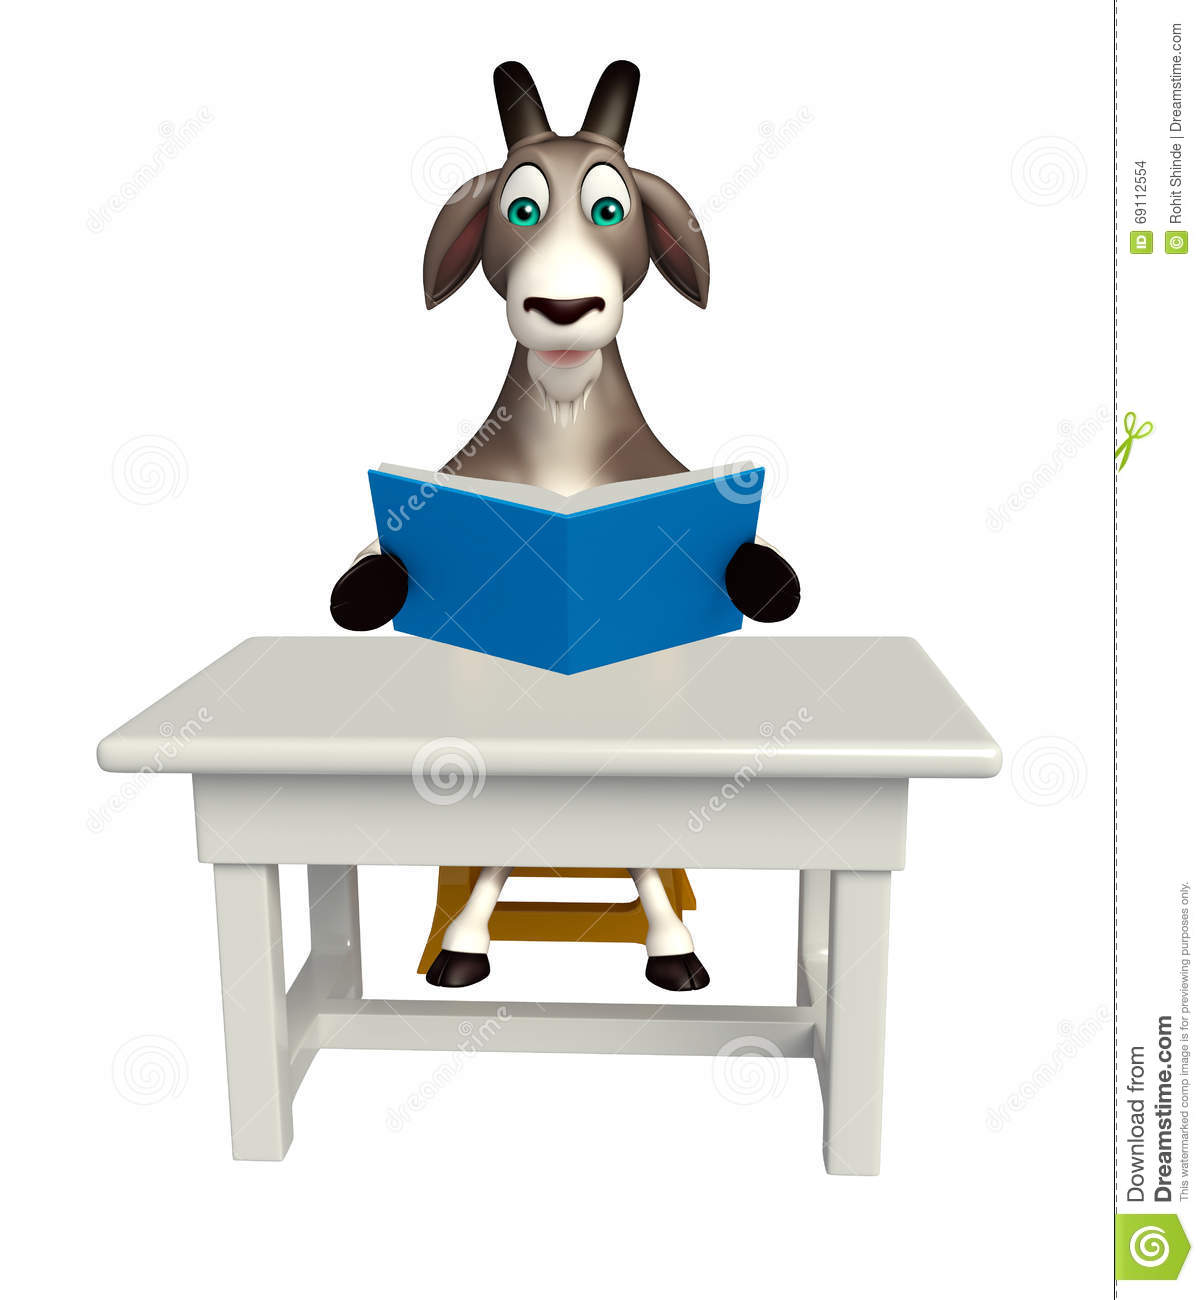 Peachy Goat Cartoon Character With Table And Chair Stock Download Free Architecture Designs Scobabritishbridgeorg